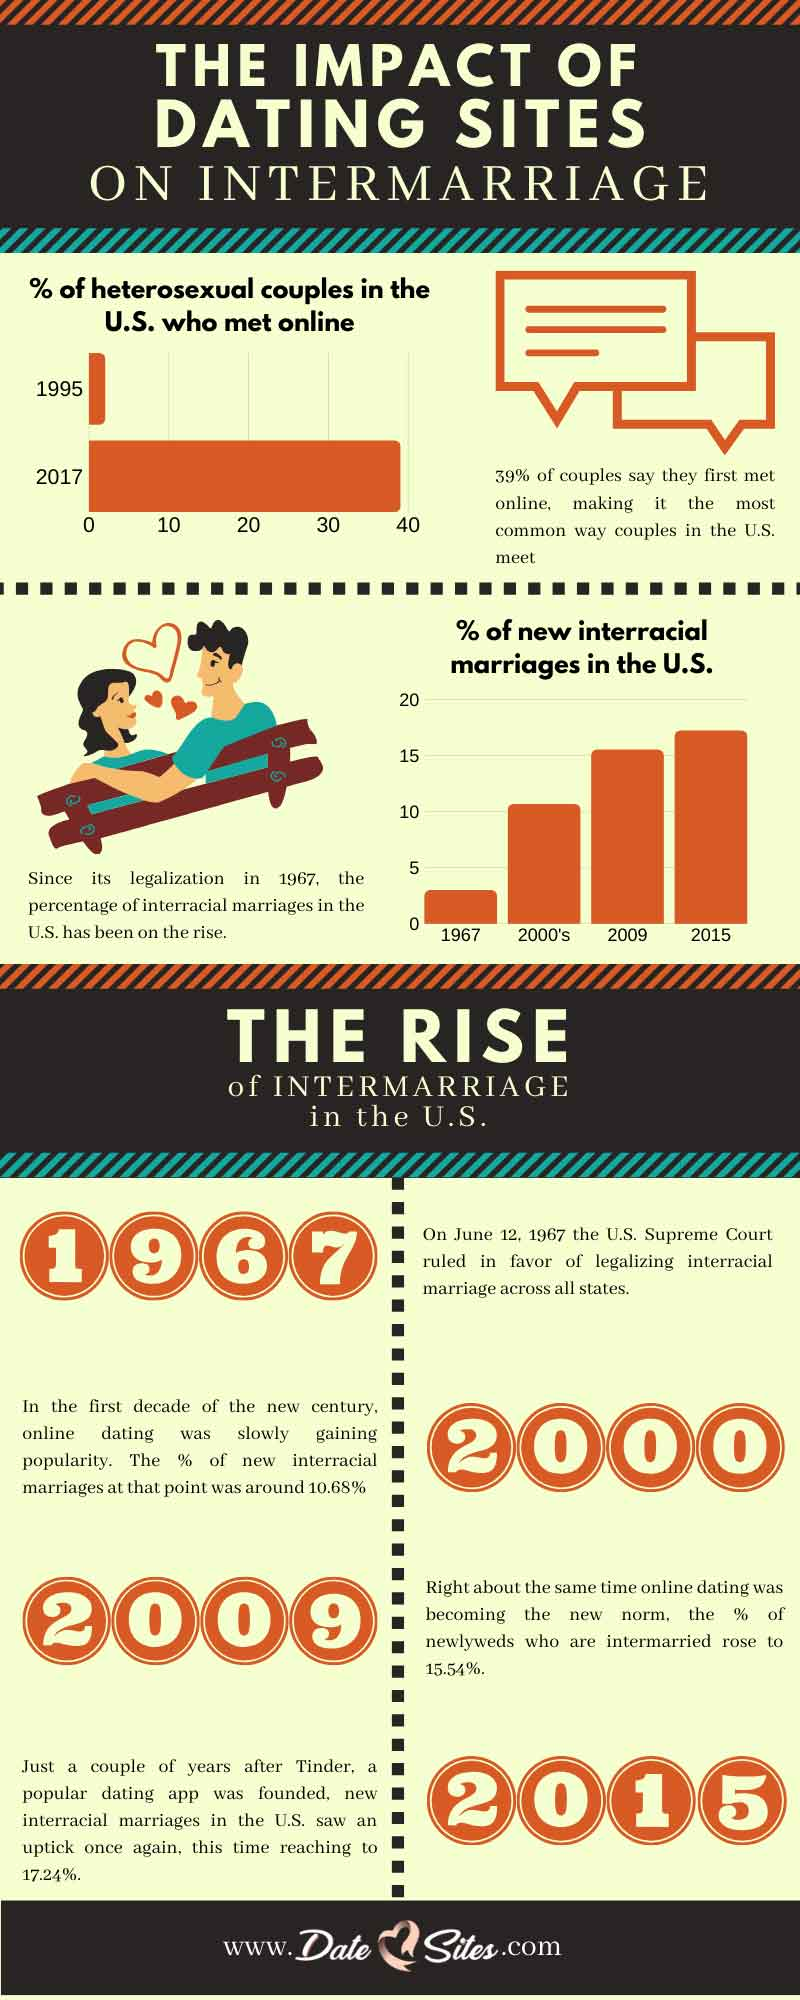 An infographic about the impact of online dating sites on interracial marriages in the U.S.